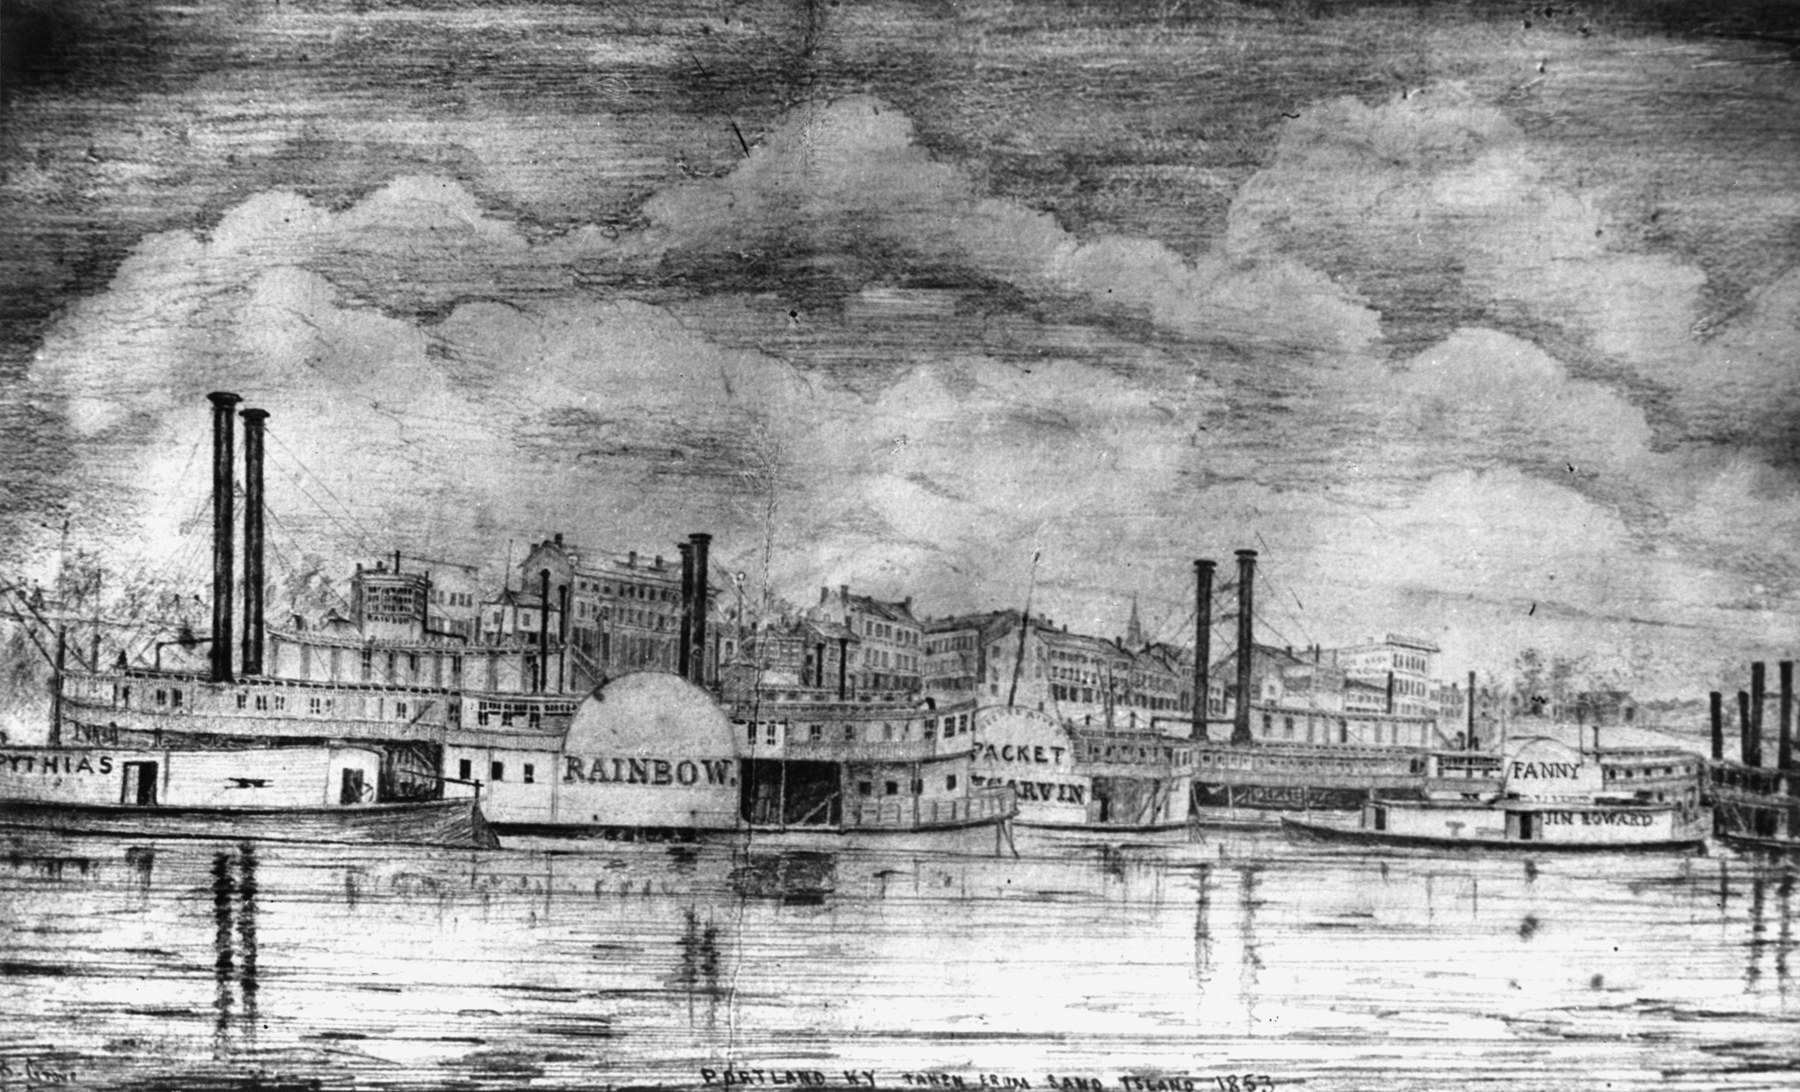 Sketch of Portland Wharf near its peak of steamboat activity in 1853